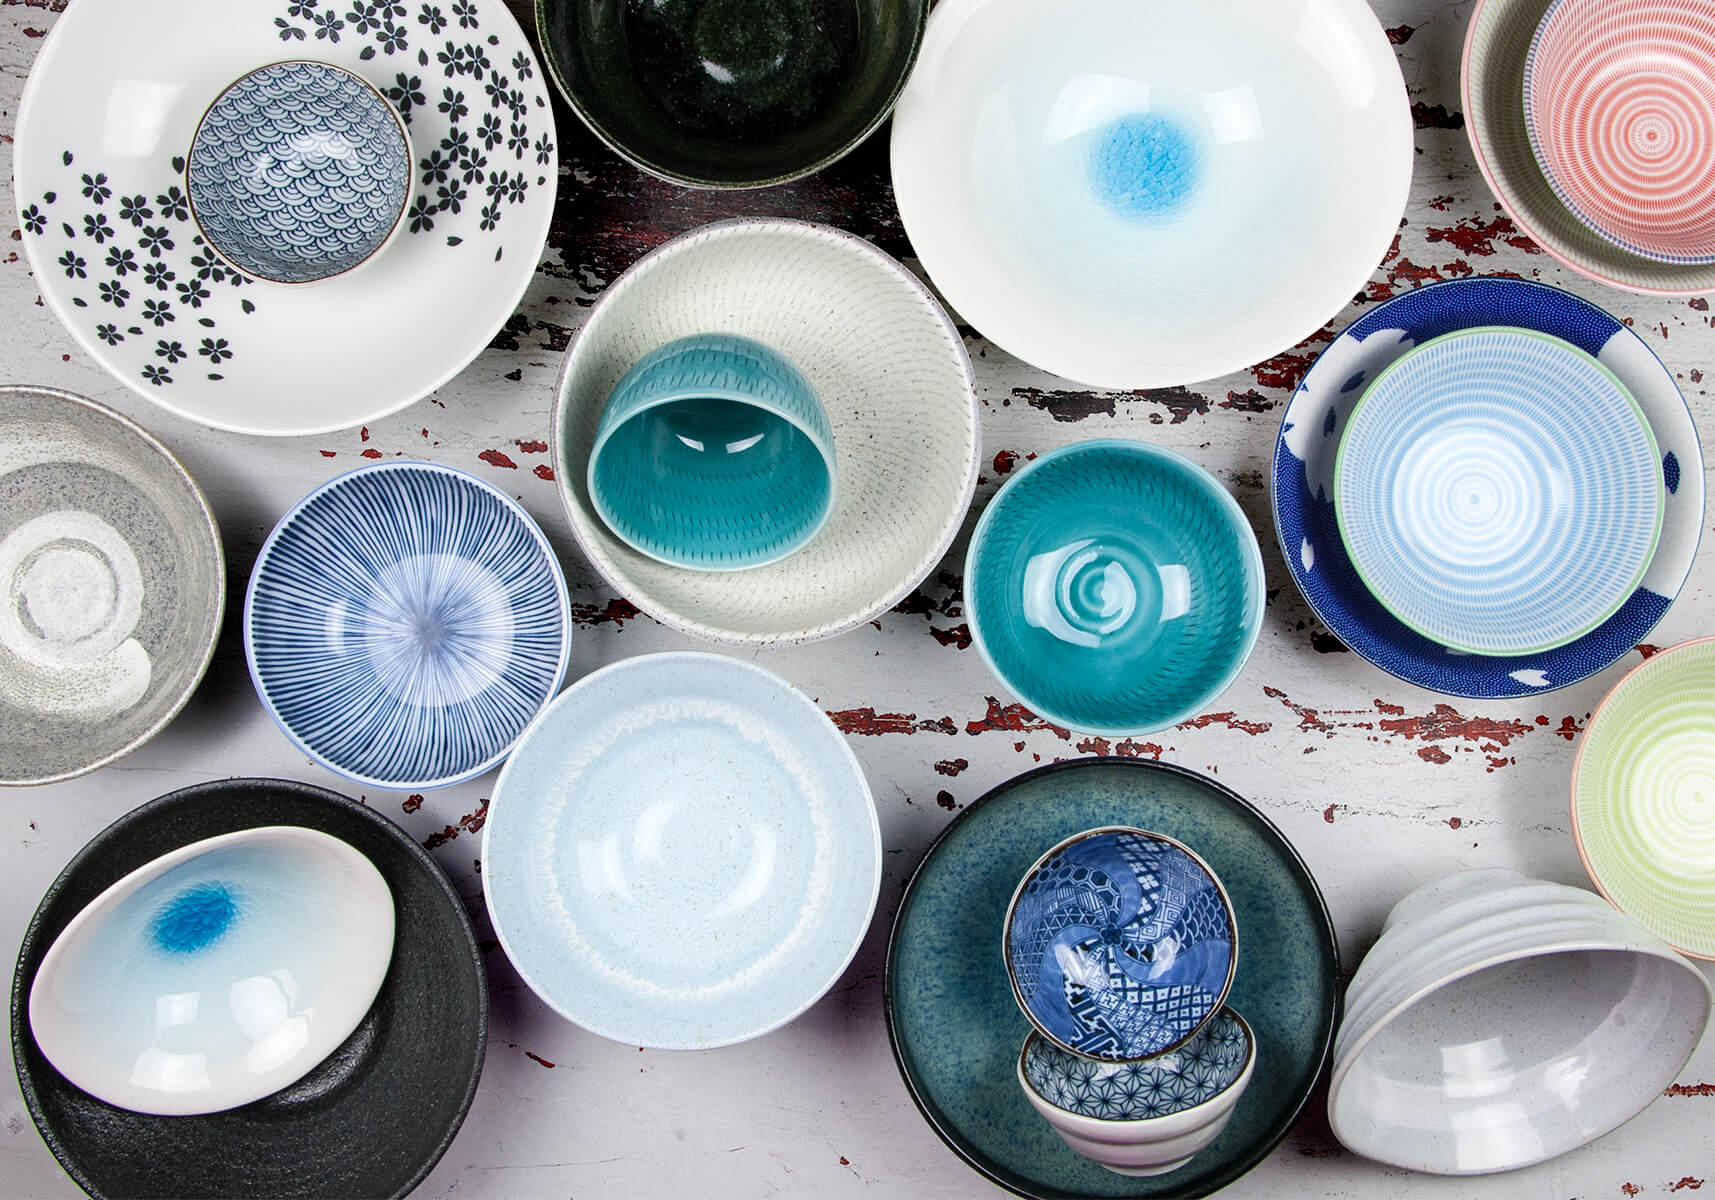 Japanese Plates Bowls Platters Cups Mugs - Made in Japan & About Us - Nendo | Japanese Tableware